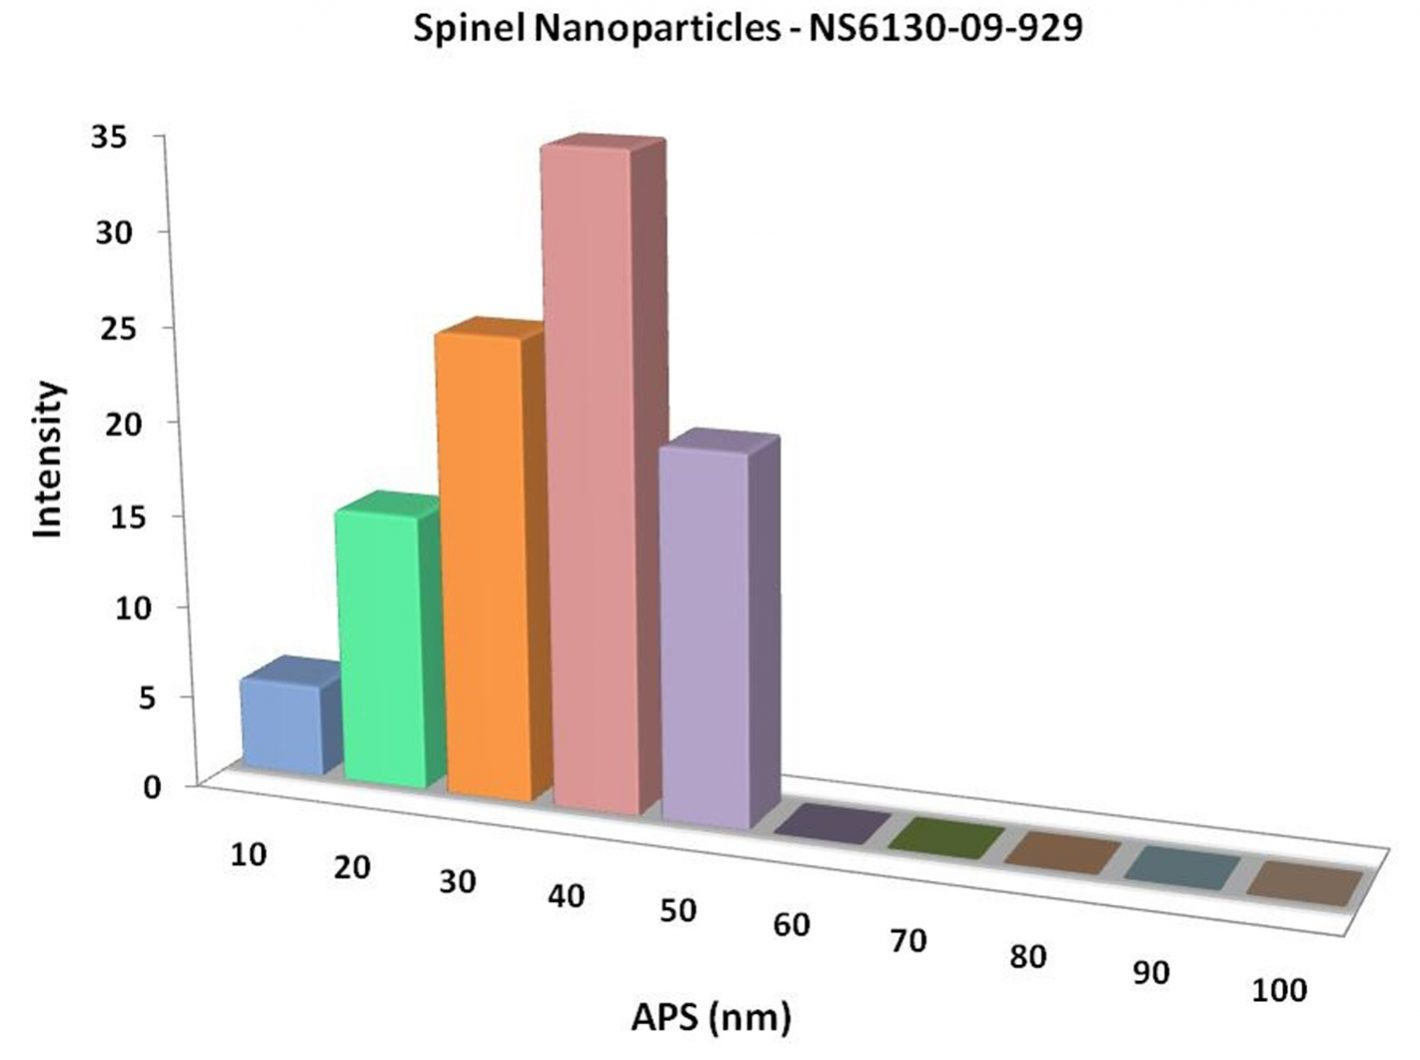 Particles Size Analysis - Spinel Nanoparticles